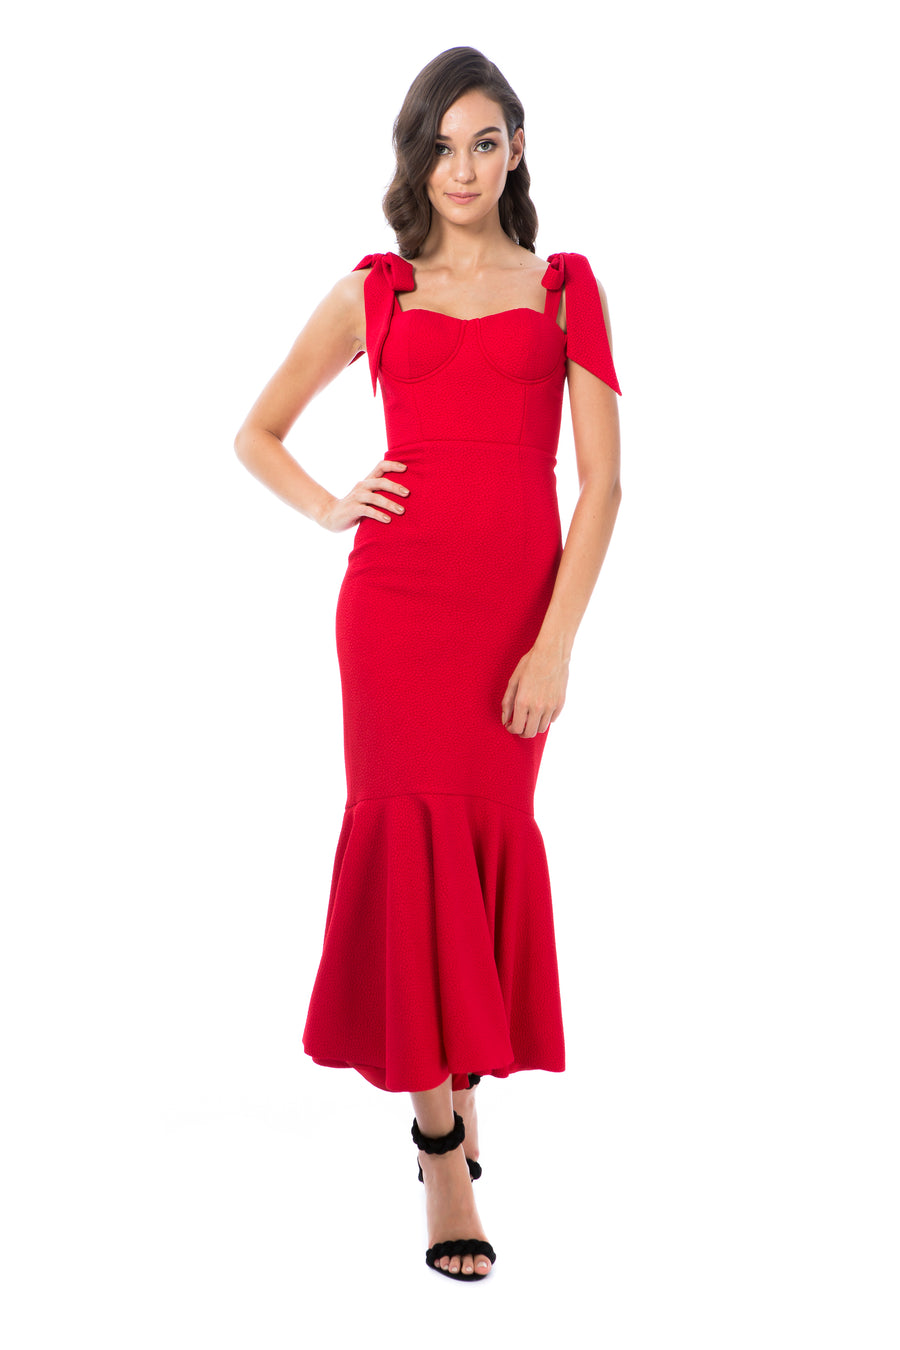 MIRABELLA GOWN - RED - GEORGY COLLECTION